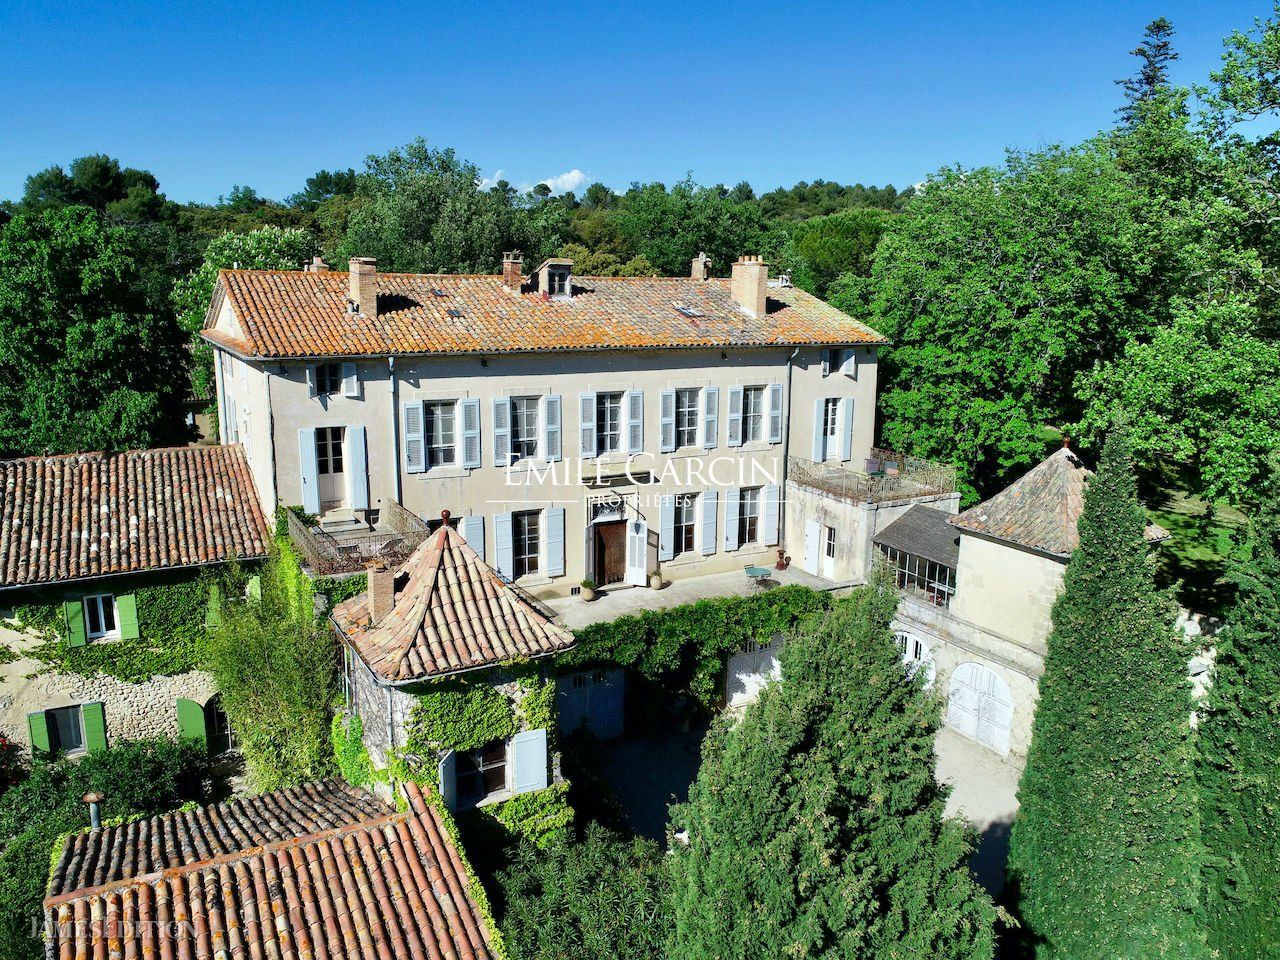 Estate in Grambois, Provence-Alpes-Côte d'Azur, France 1